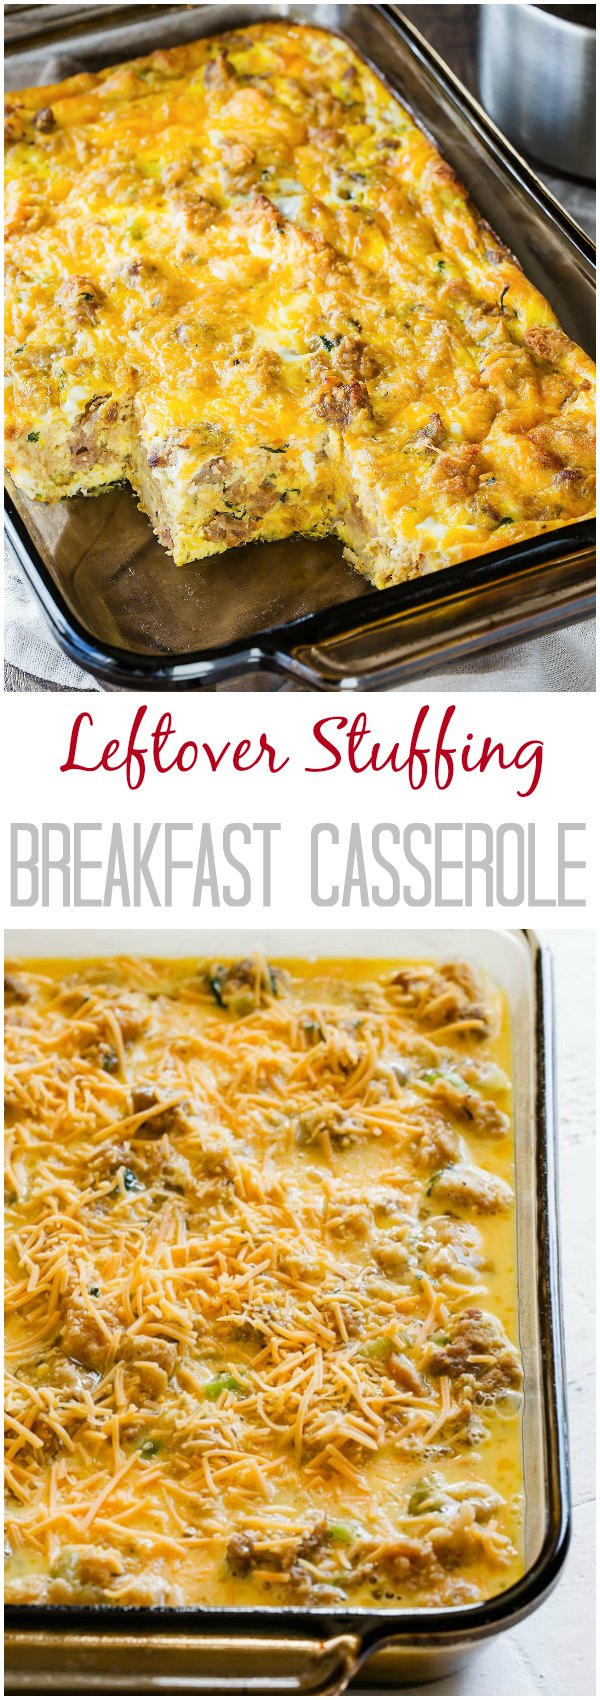 recipe: breakfast casserole with stuffing [4]